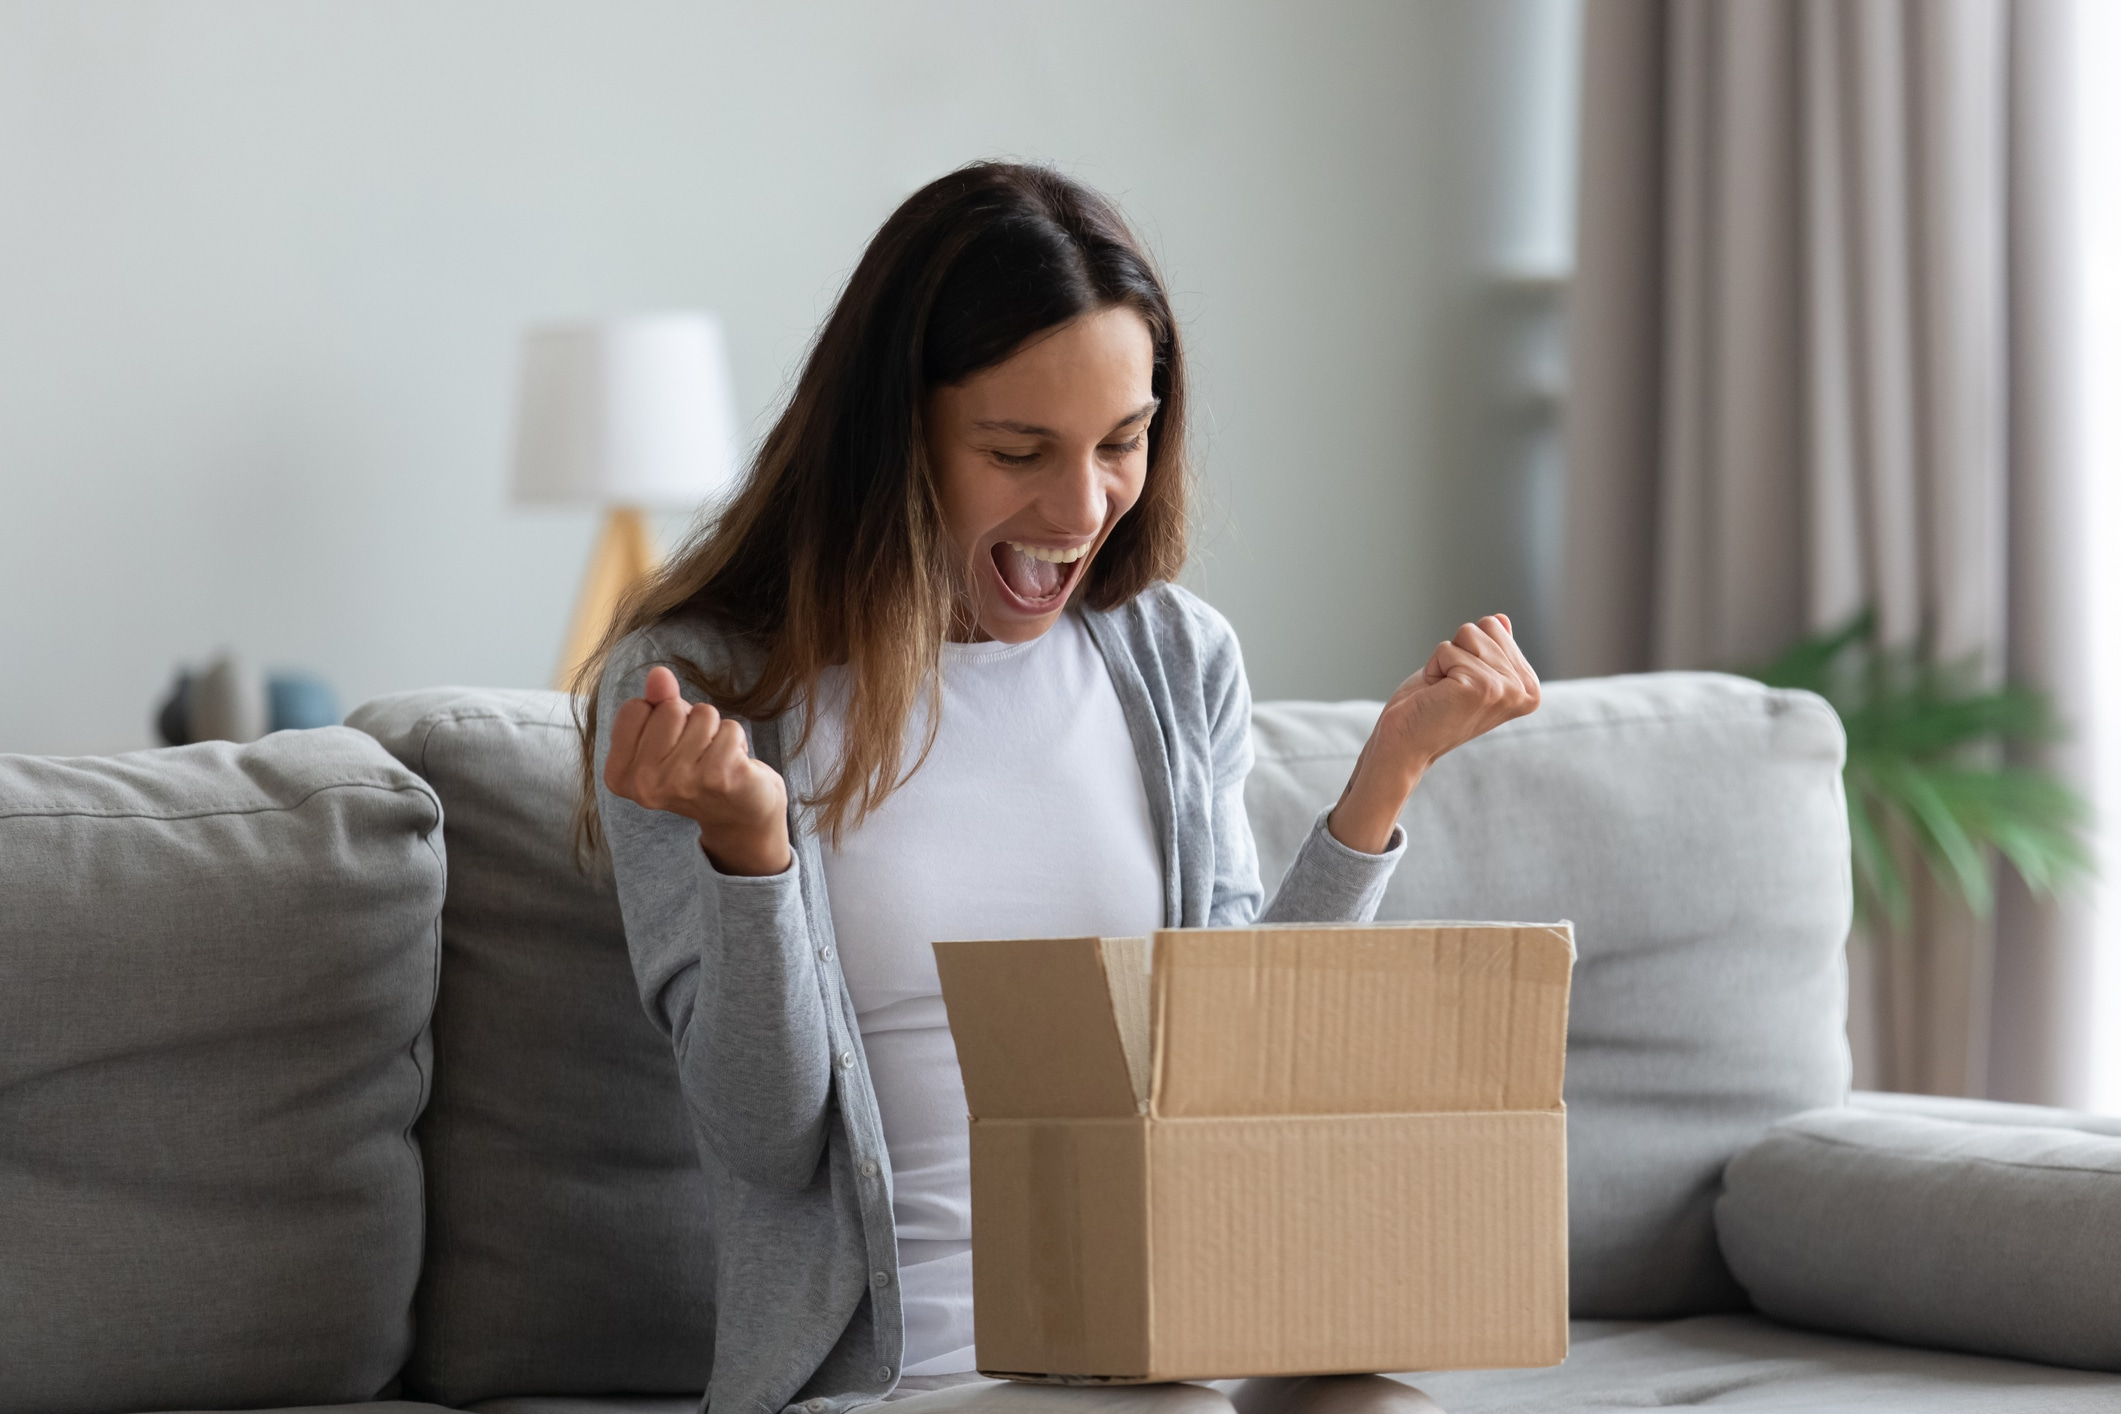 Woman opening a brown box with excitement